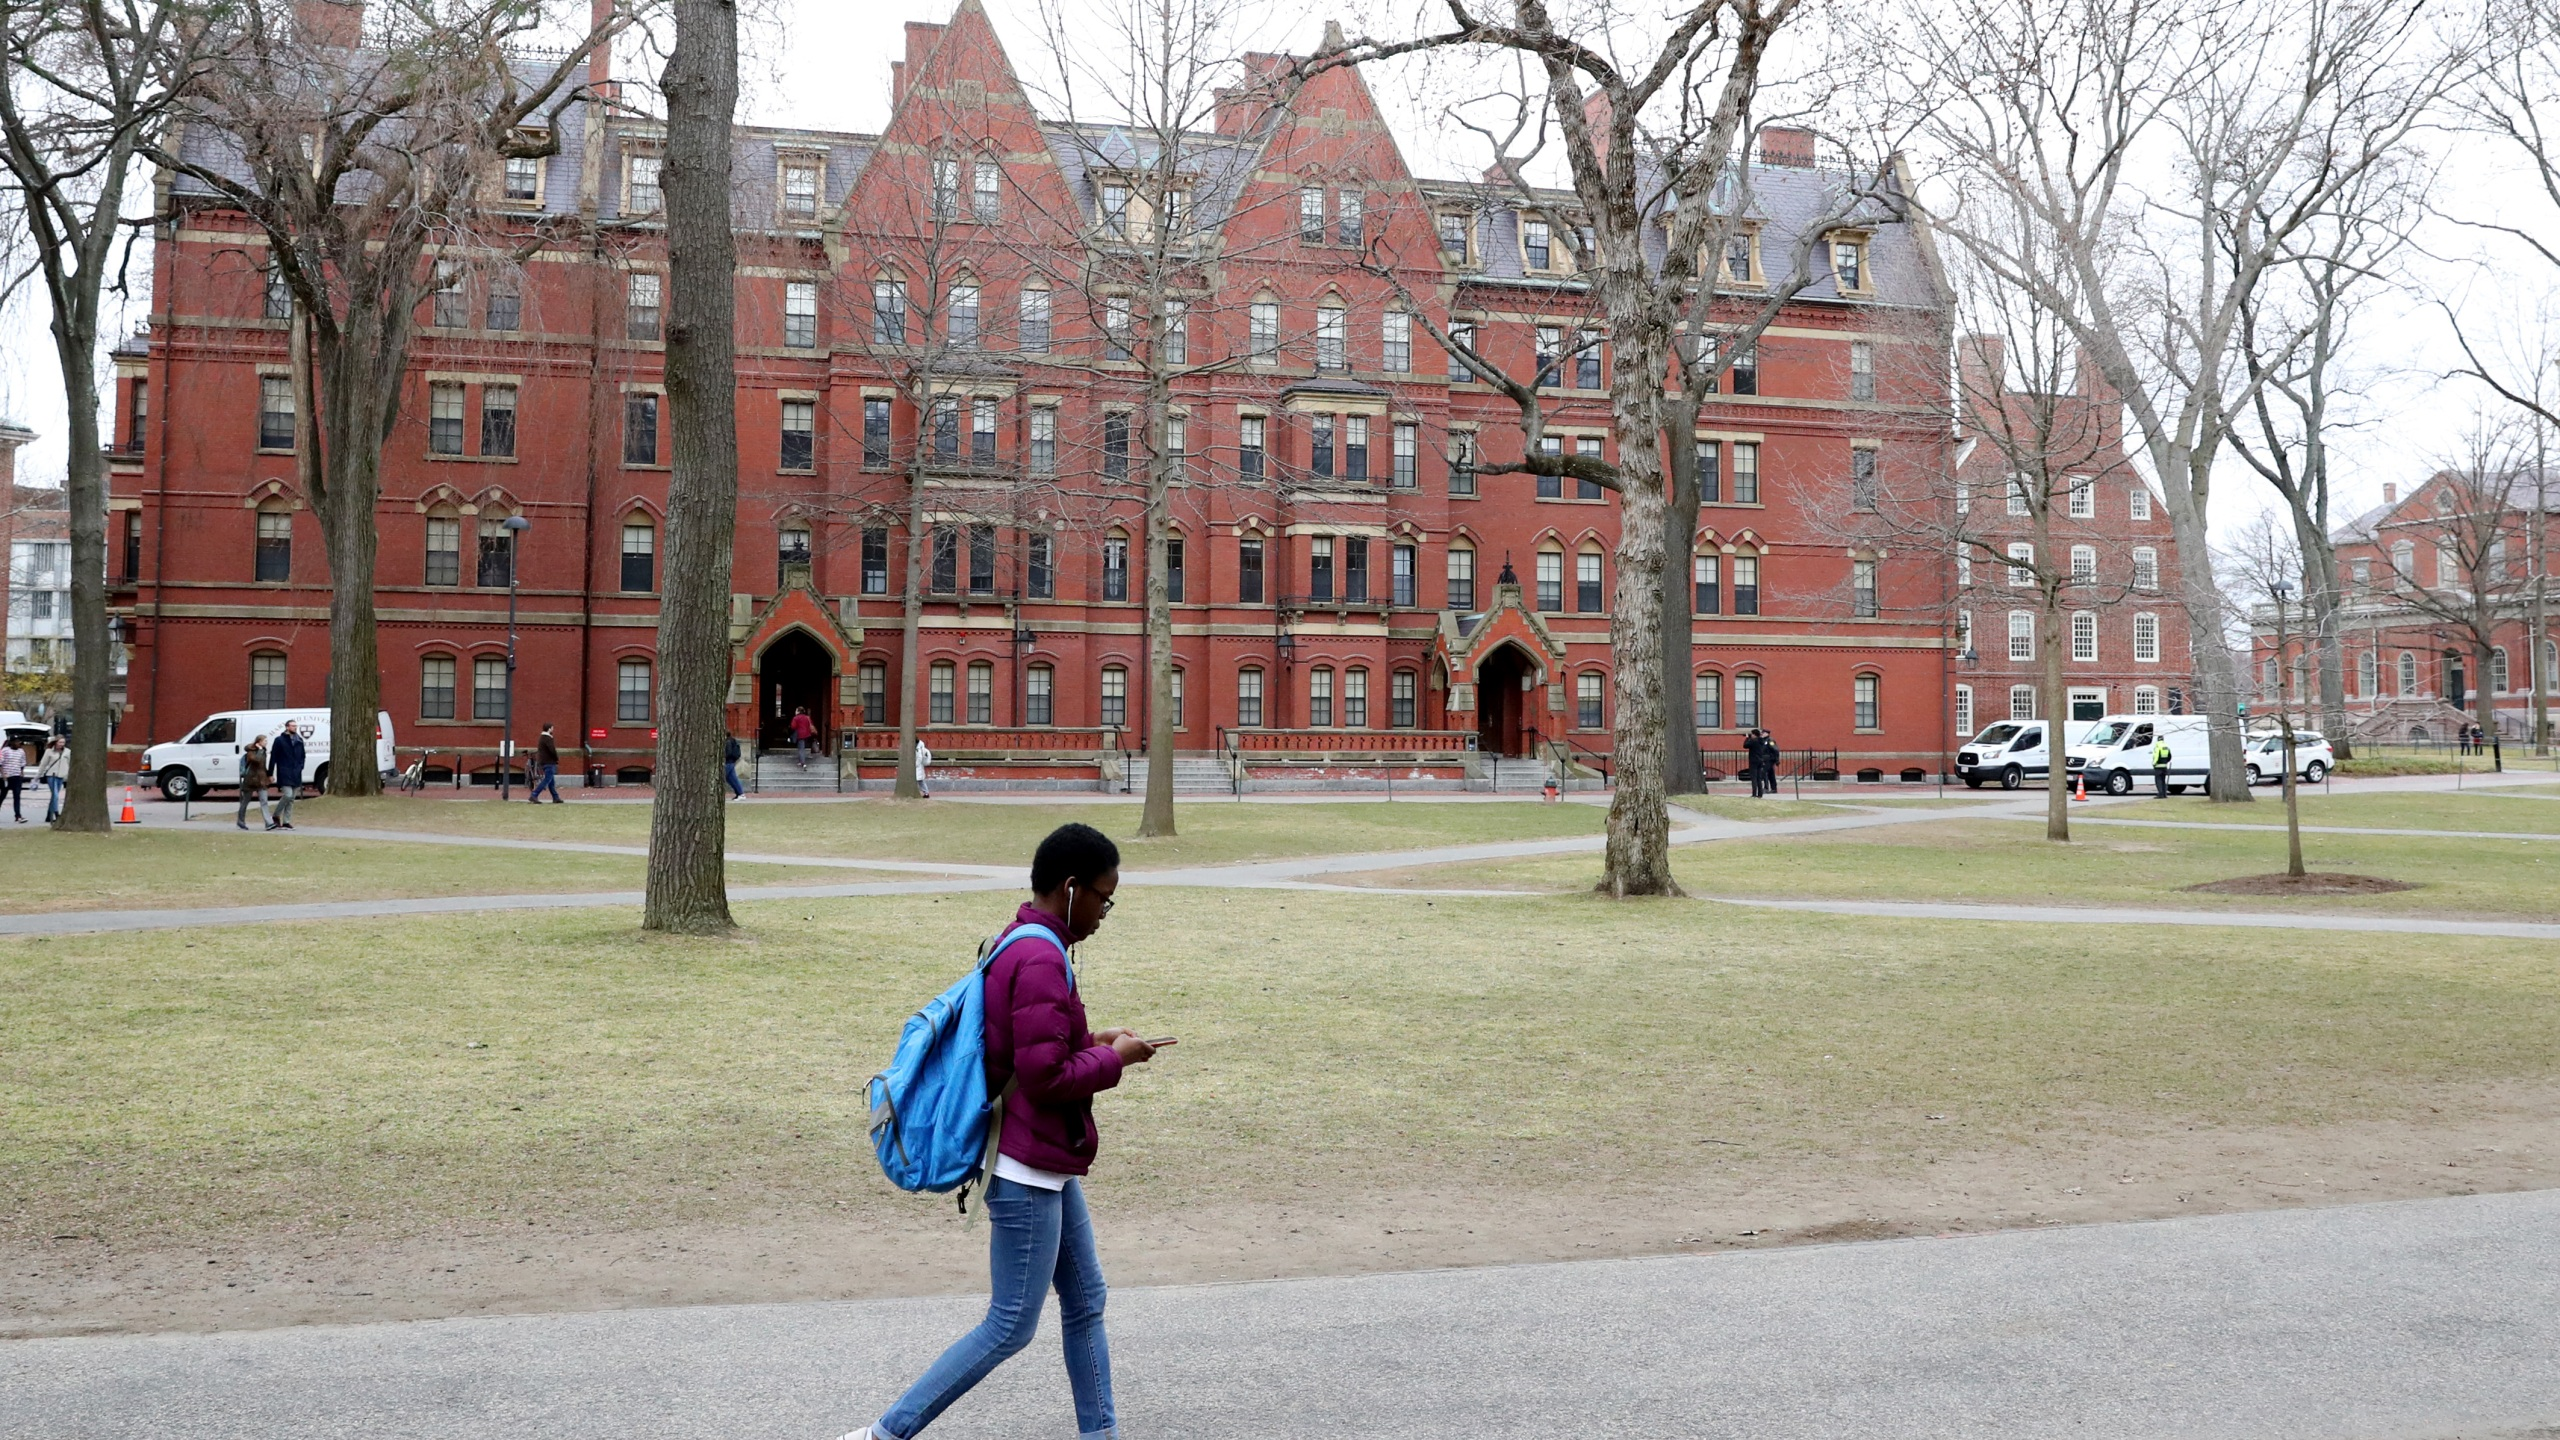 A student walks through Harvard Yard on the campus of Harvard University on March 12, 2020, in Cambridge, Massachusetts. (Maddie Meyer/Getty Images)